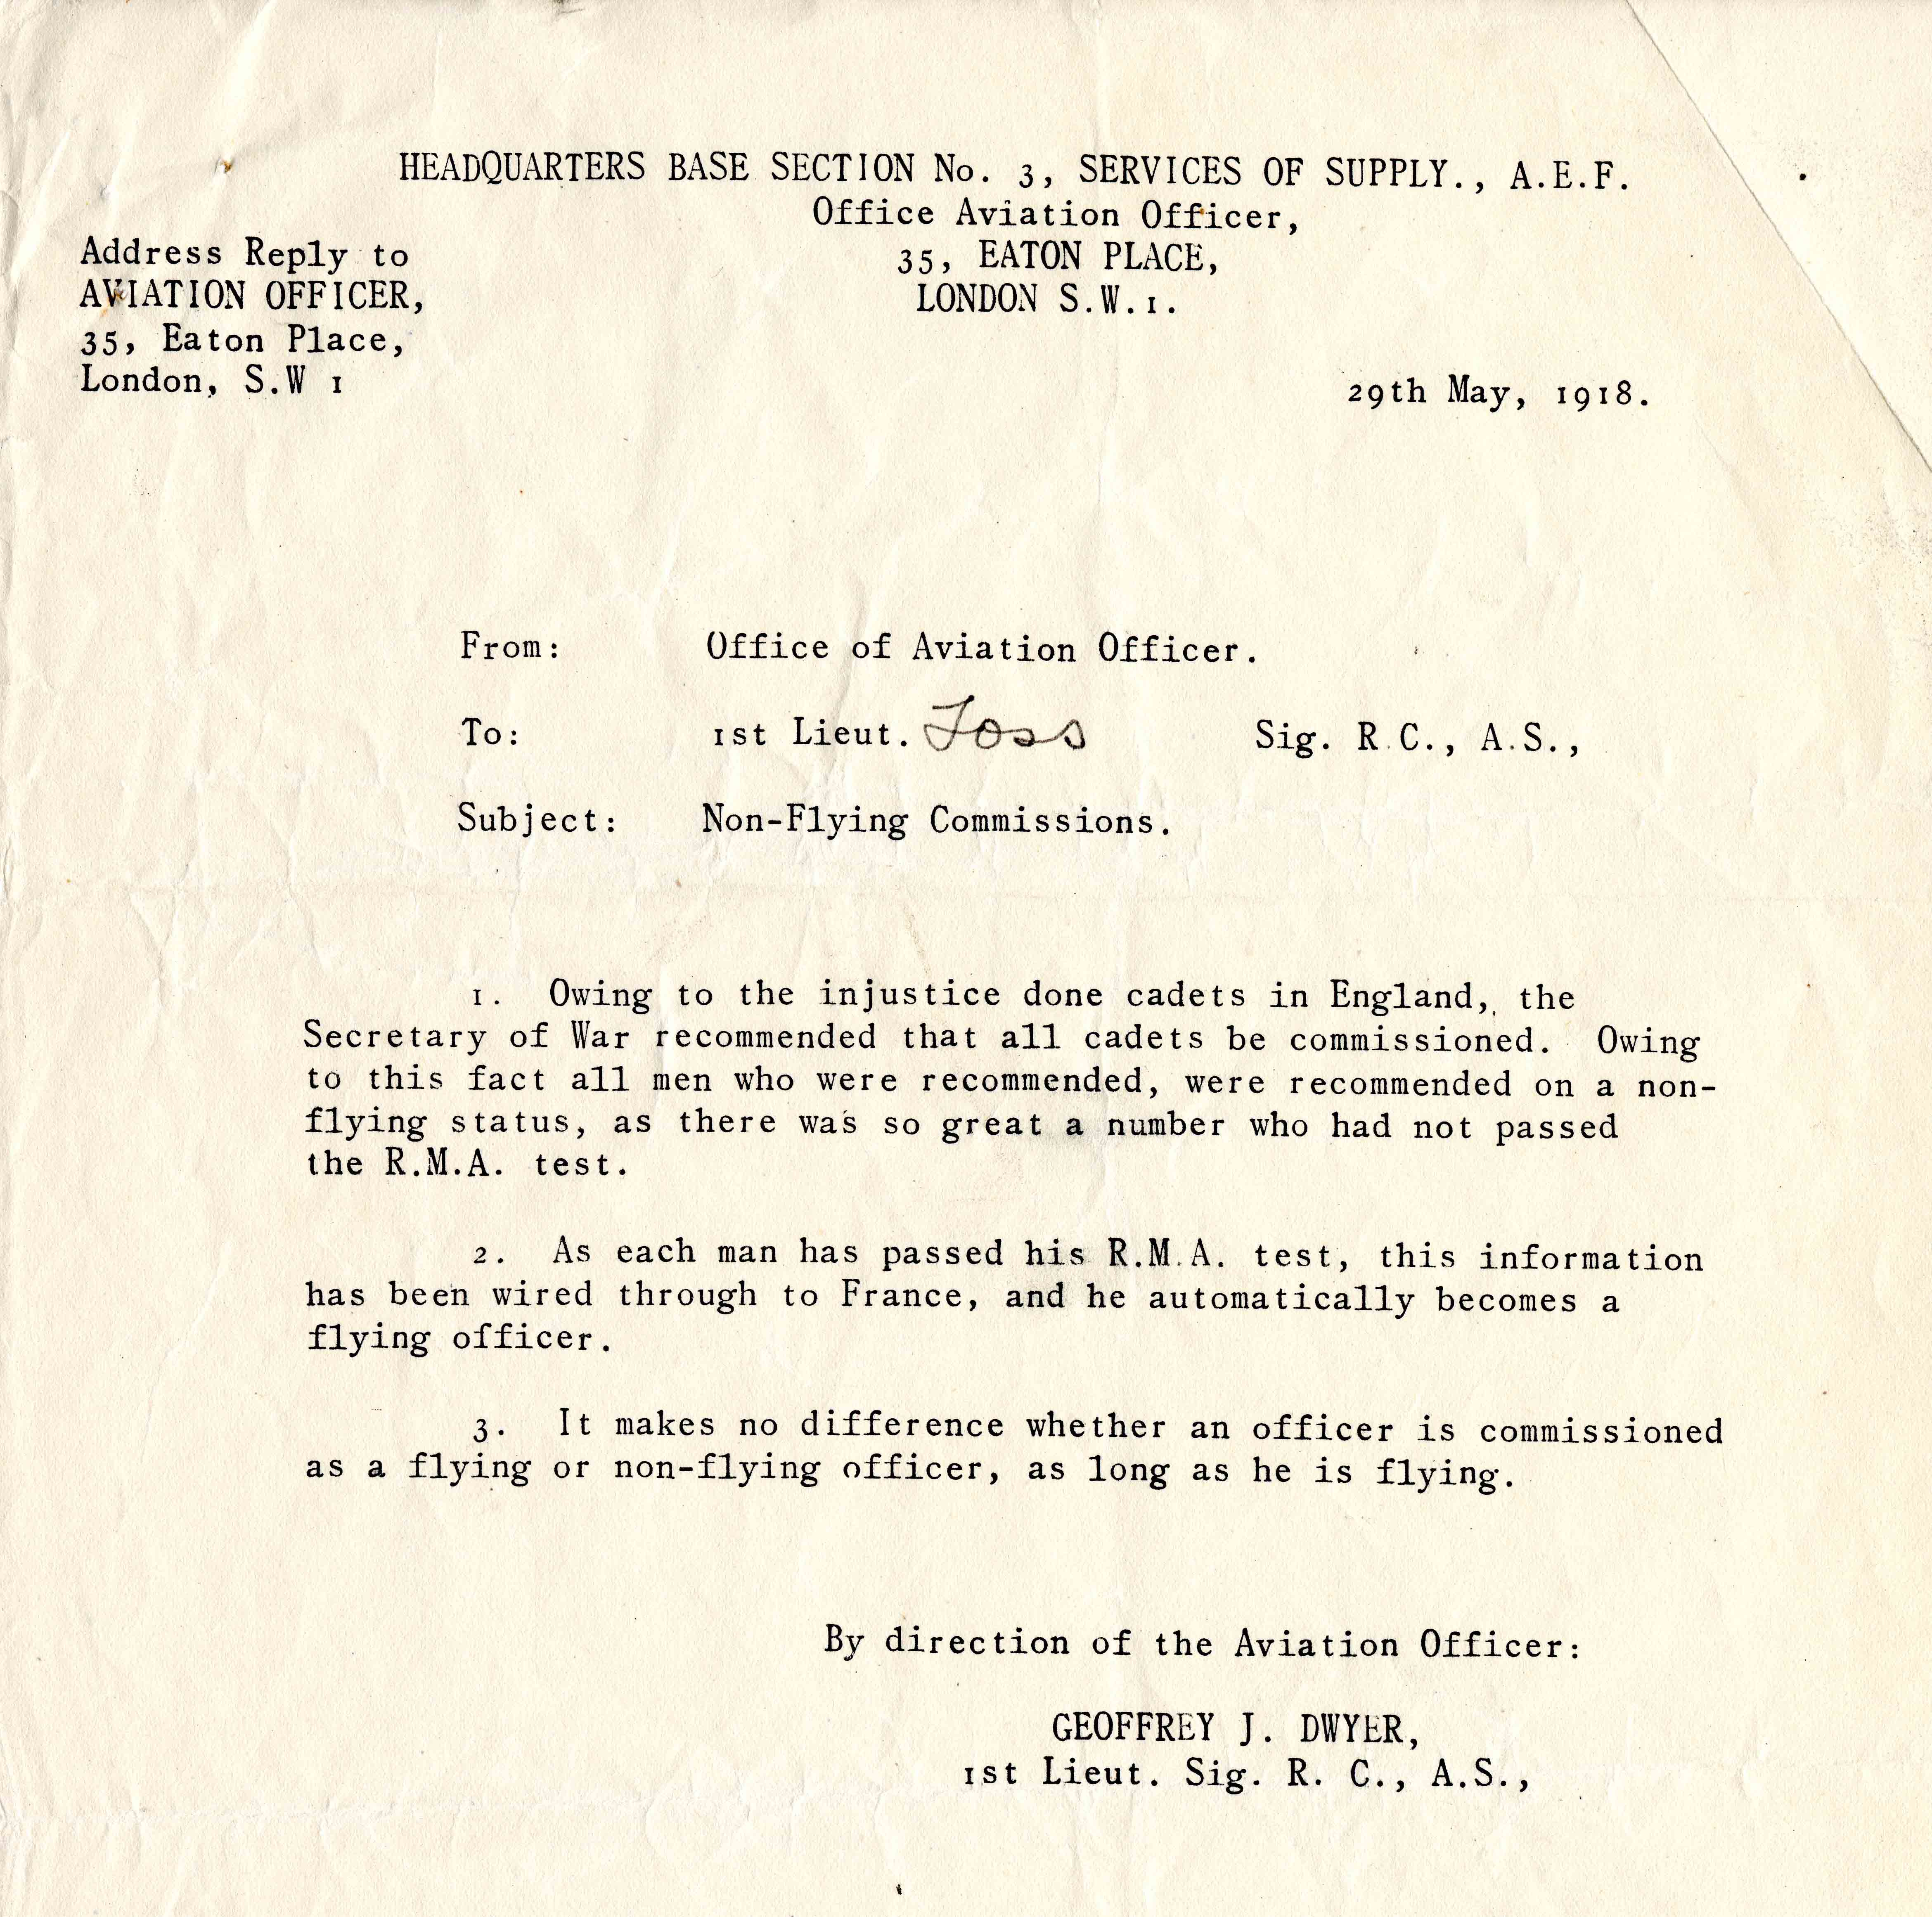 A typed memo from Geoffrey J. Dwyer to 1st Lt. Foss regarding non-flying commissions.